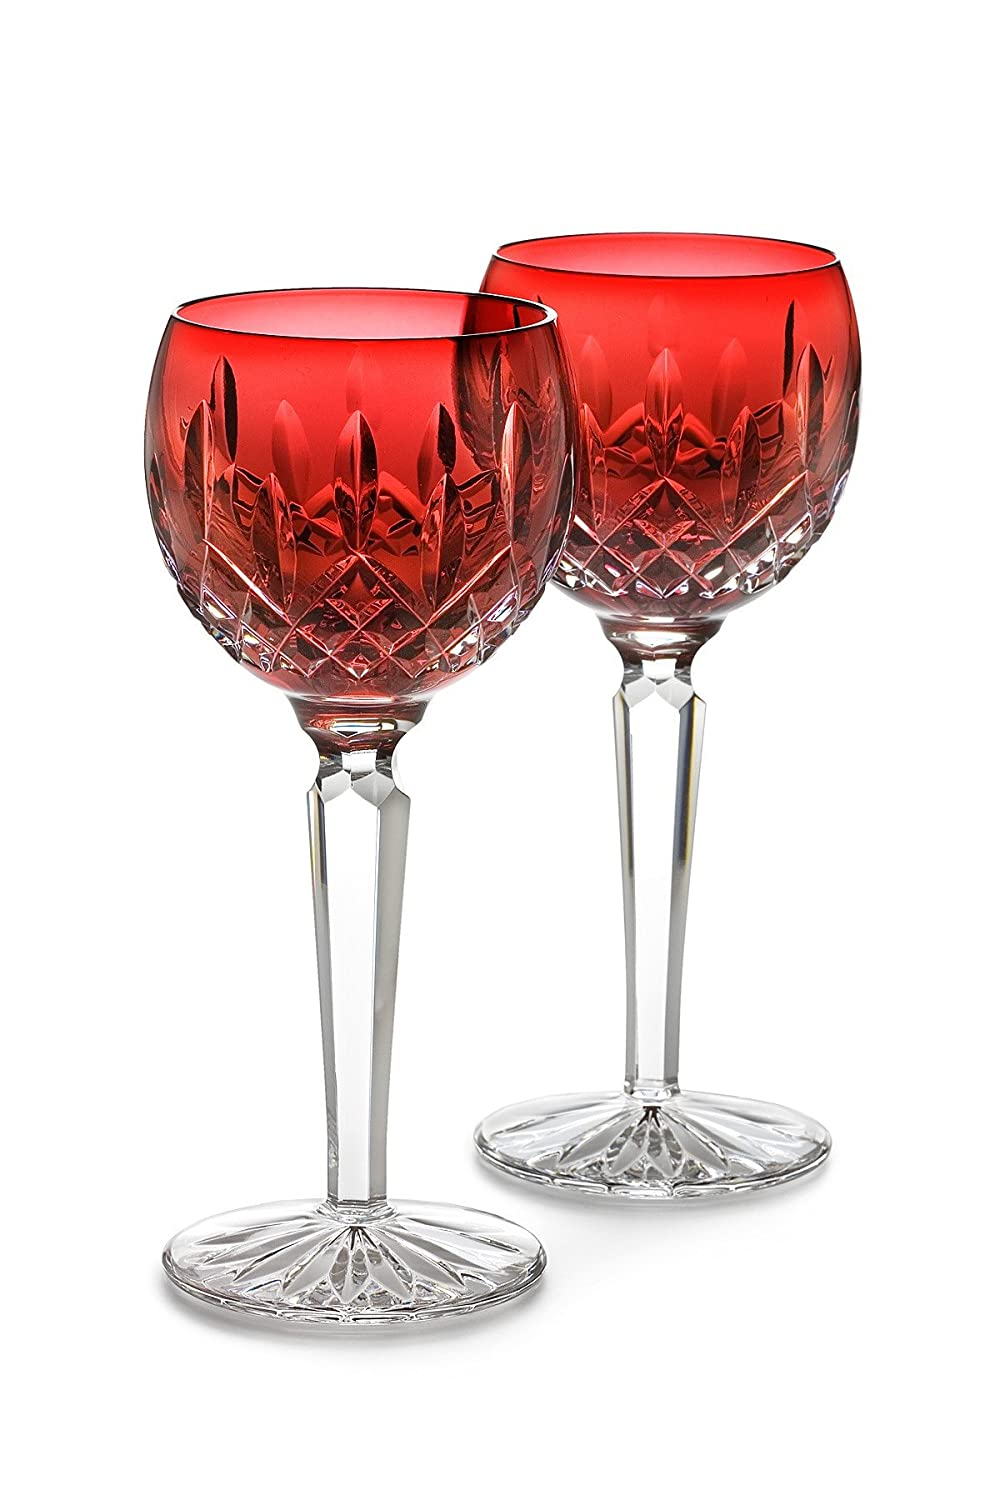 Christmas Tablescape Décor - Waterford Crystal Lismore crimson red hock glasses - Set of 2